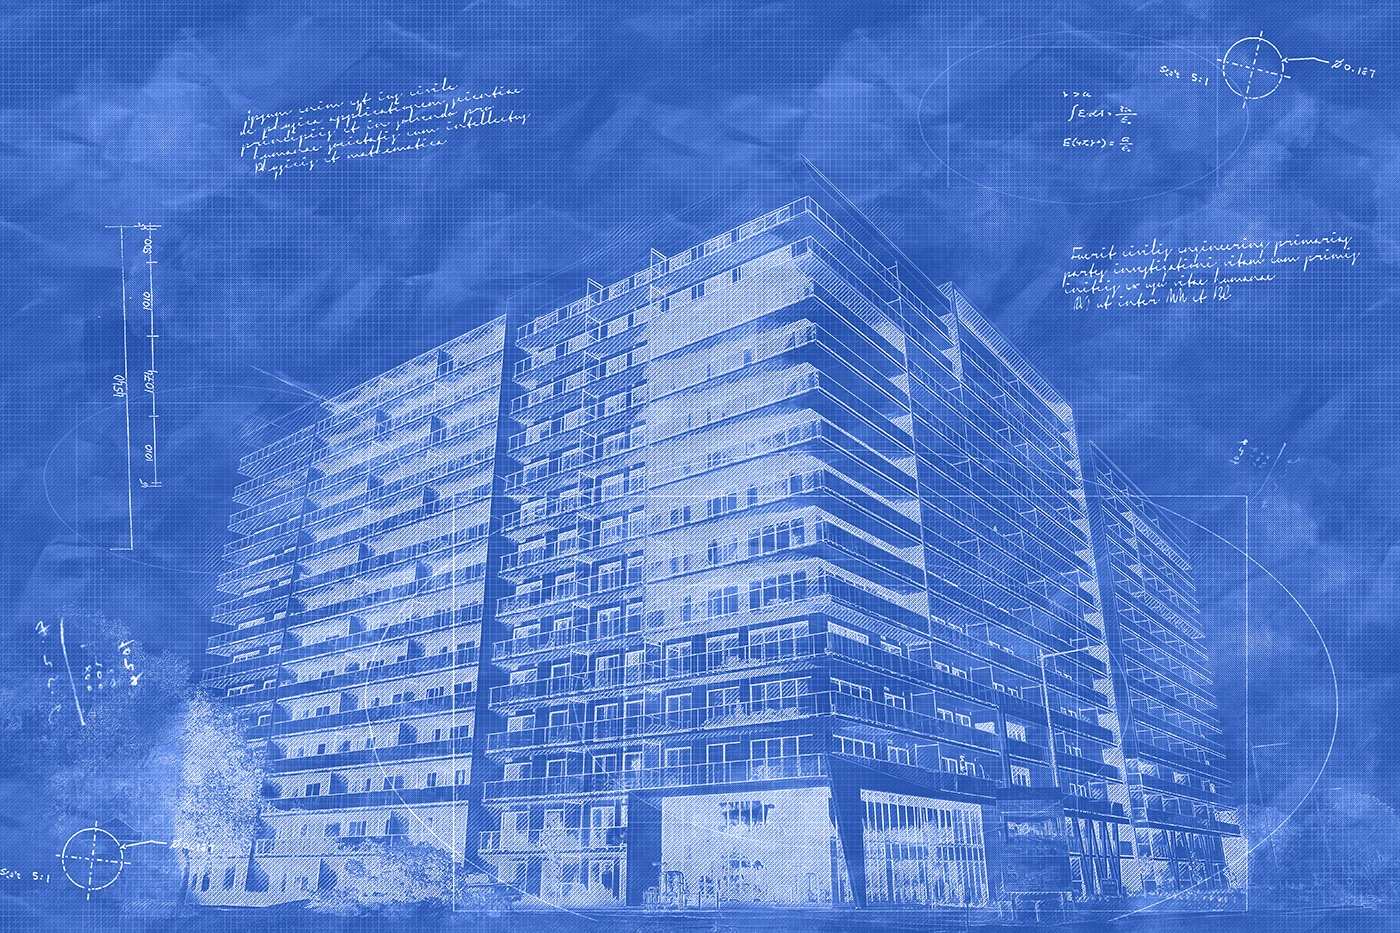 Large Condominium Building Sketch Blueprint Image - Stock Photos, Pictures & Images